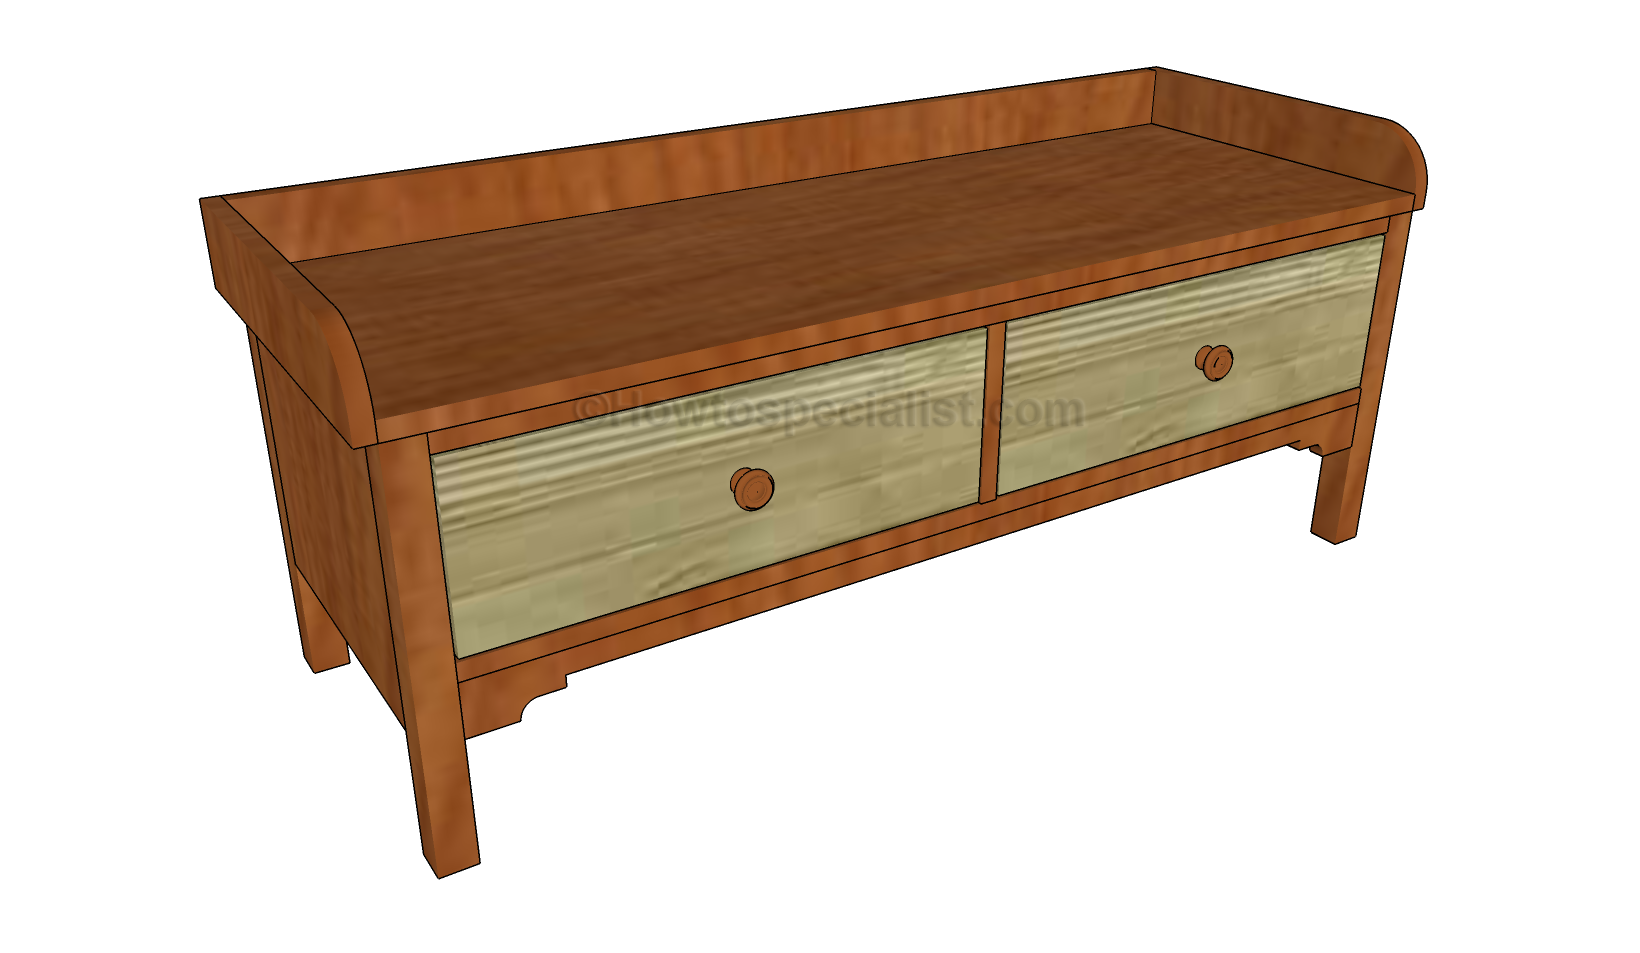 Entryway Bench Plans Howtospecialist How To Build Step By Step Diy Plans